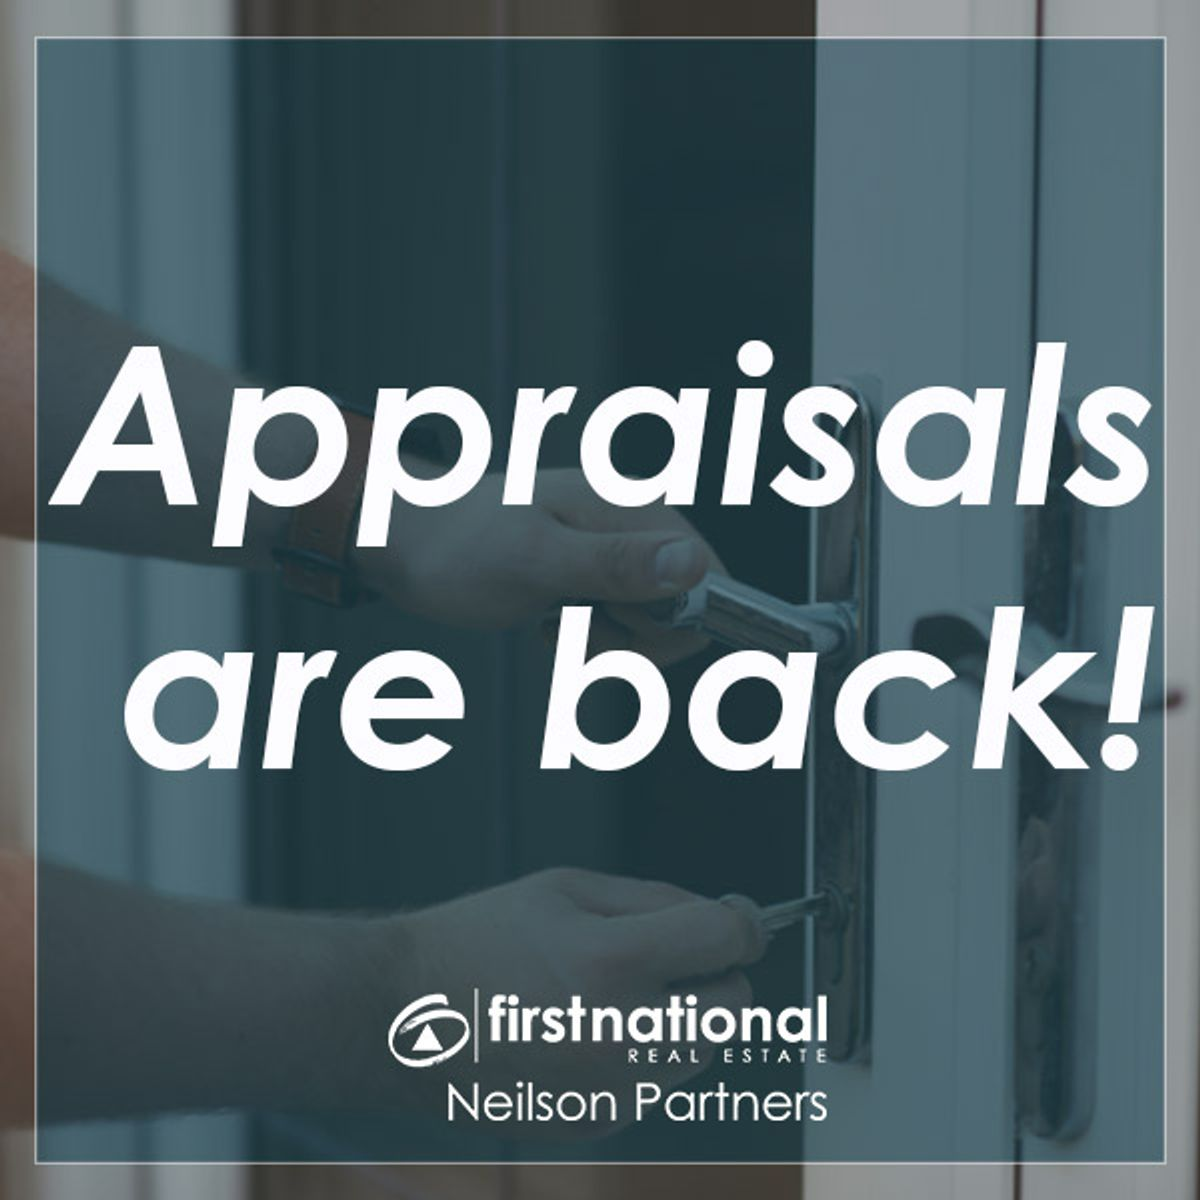 Appraisals are back